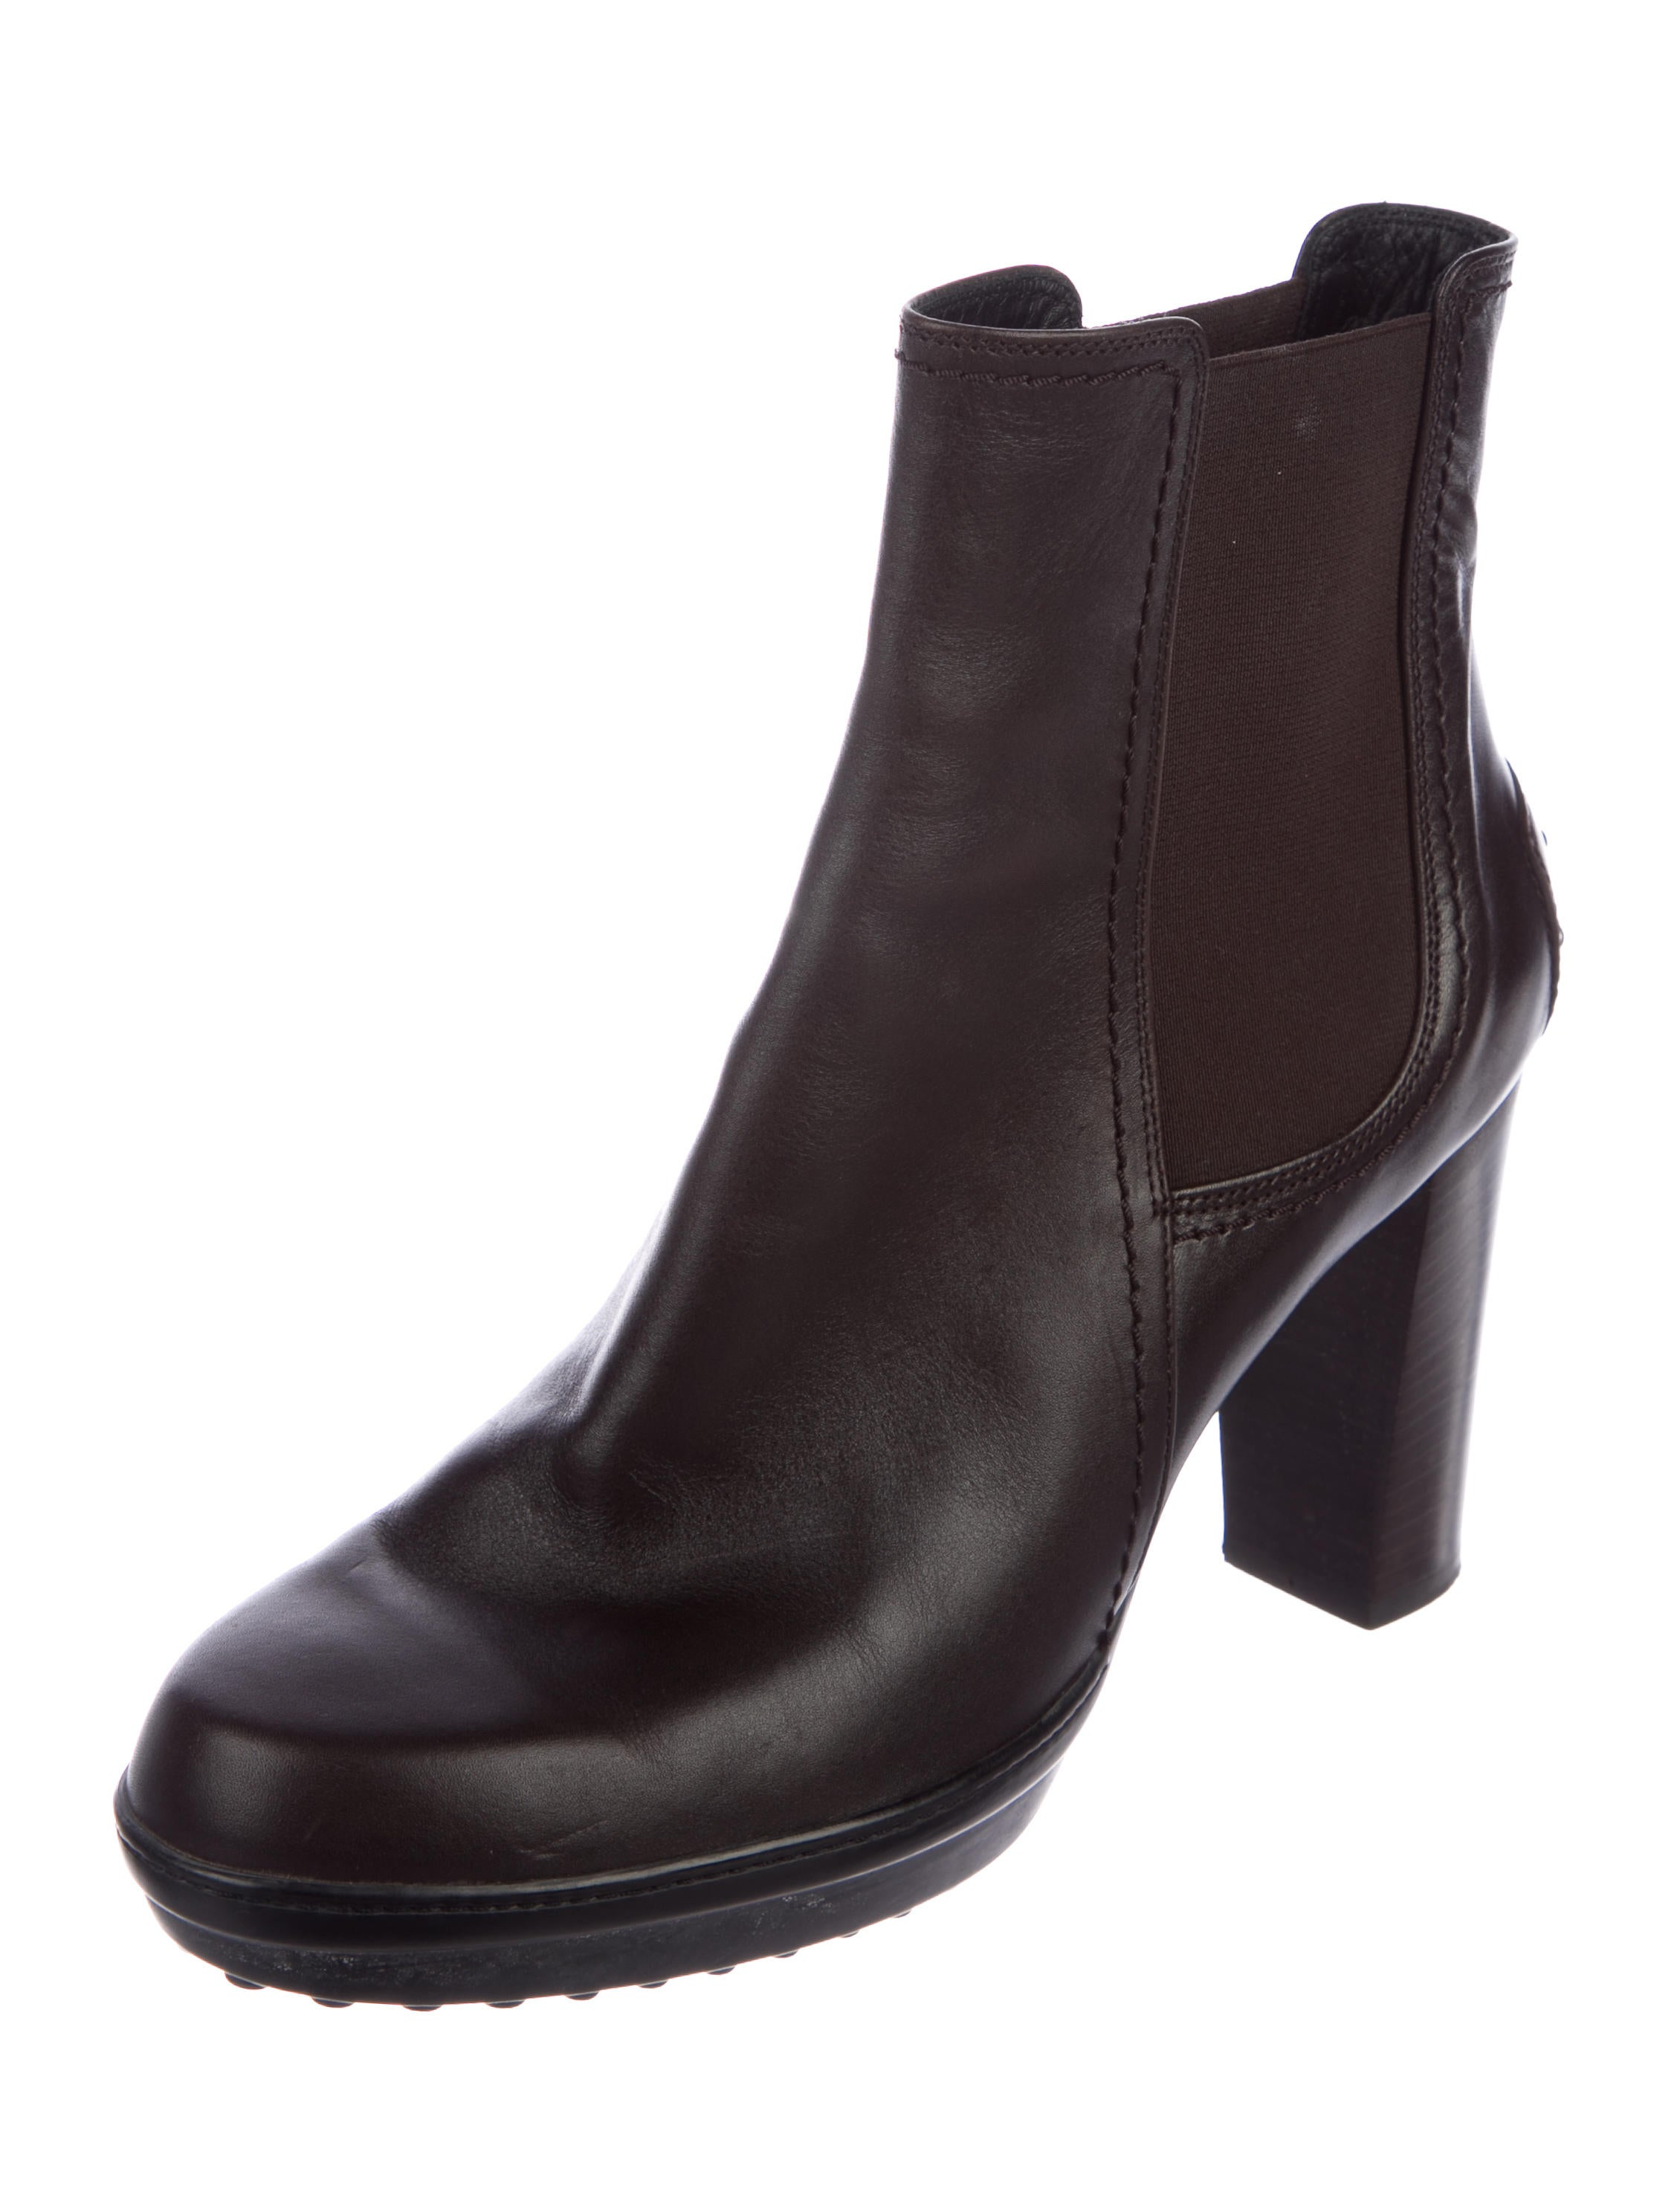 clearance low shipping fee Tod's round toe boots cheap sale finishline sale online shopping buy cheap the cheapest 2kNCIsb